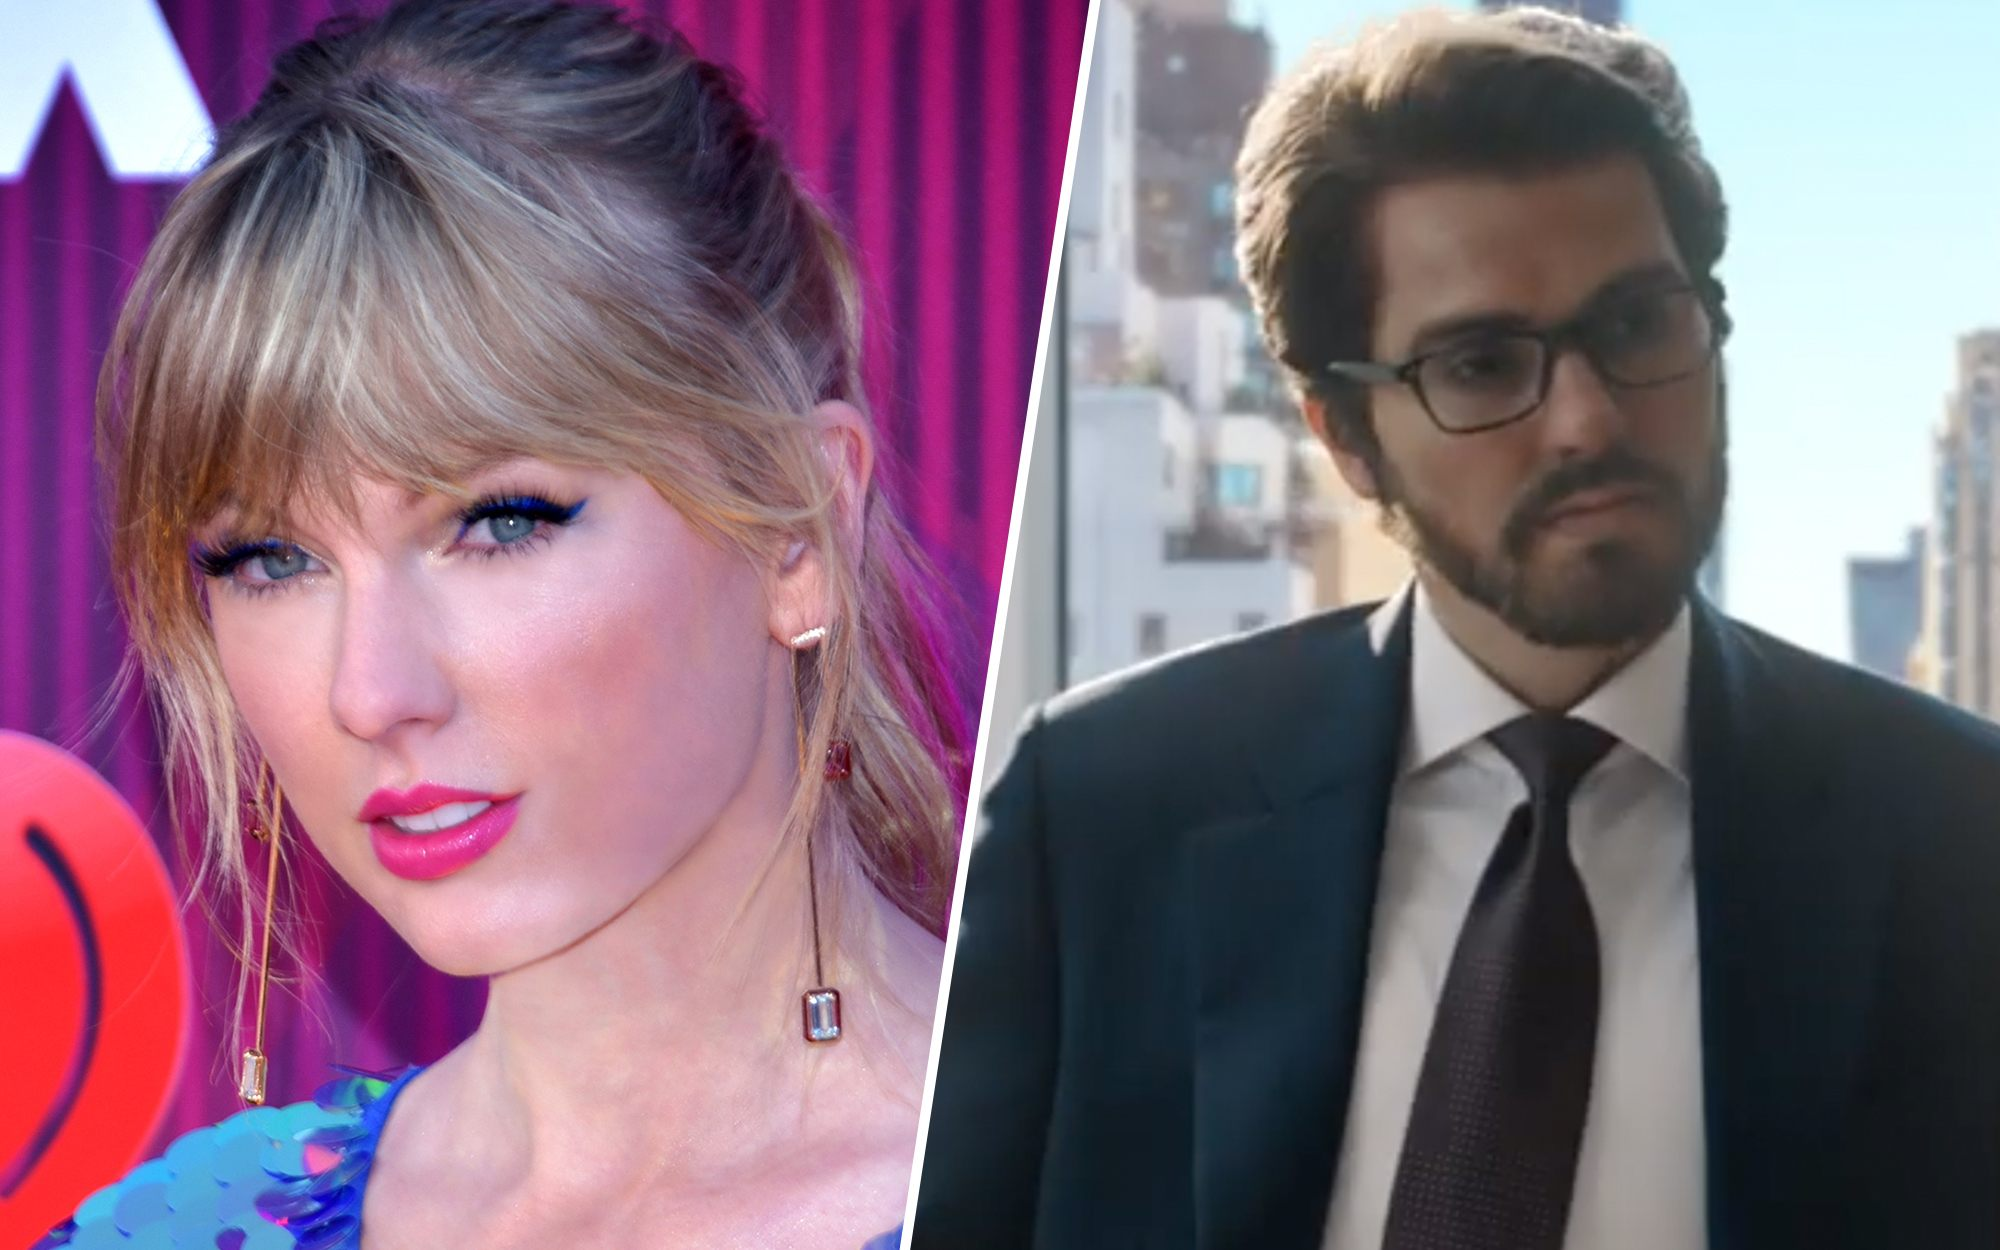 Opinion: Taylor Swift transforms into a 'misogynist male' in new man-bashing feminist video